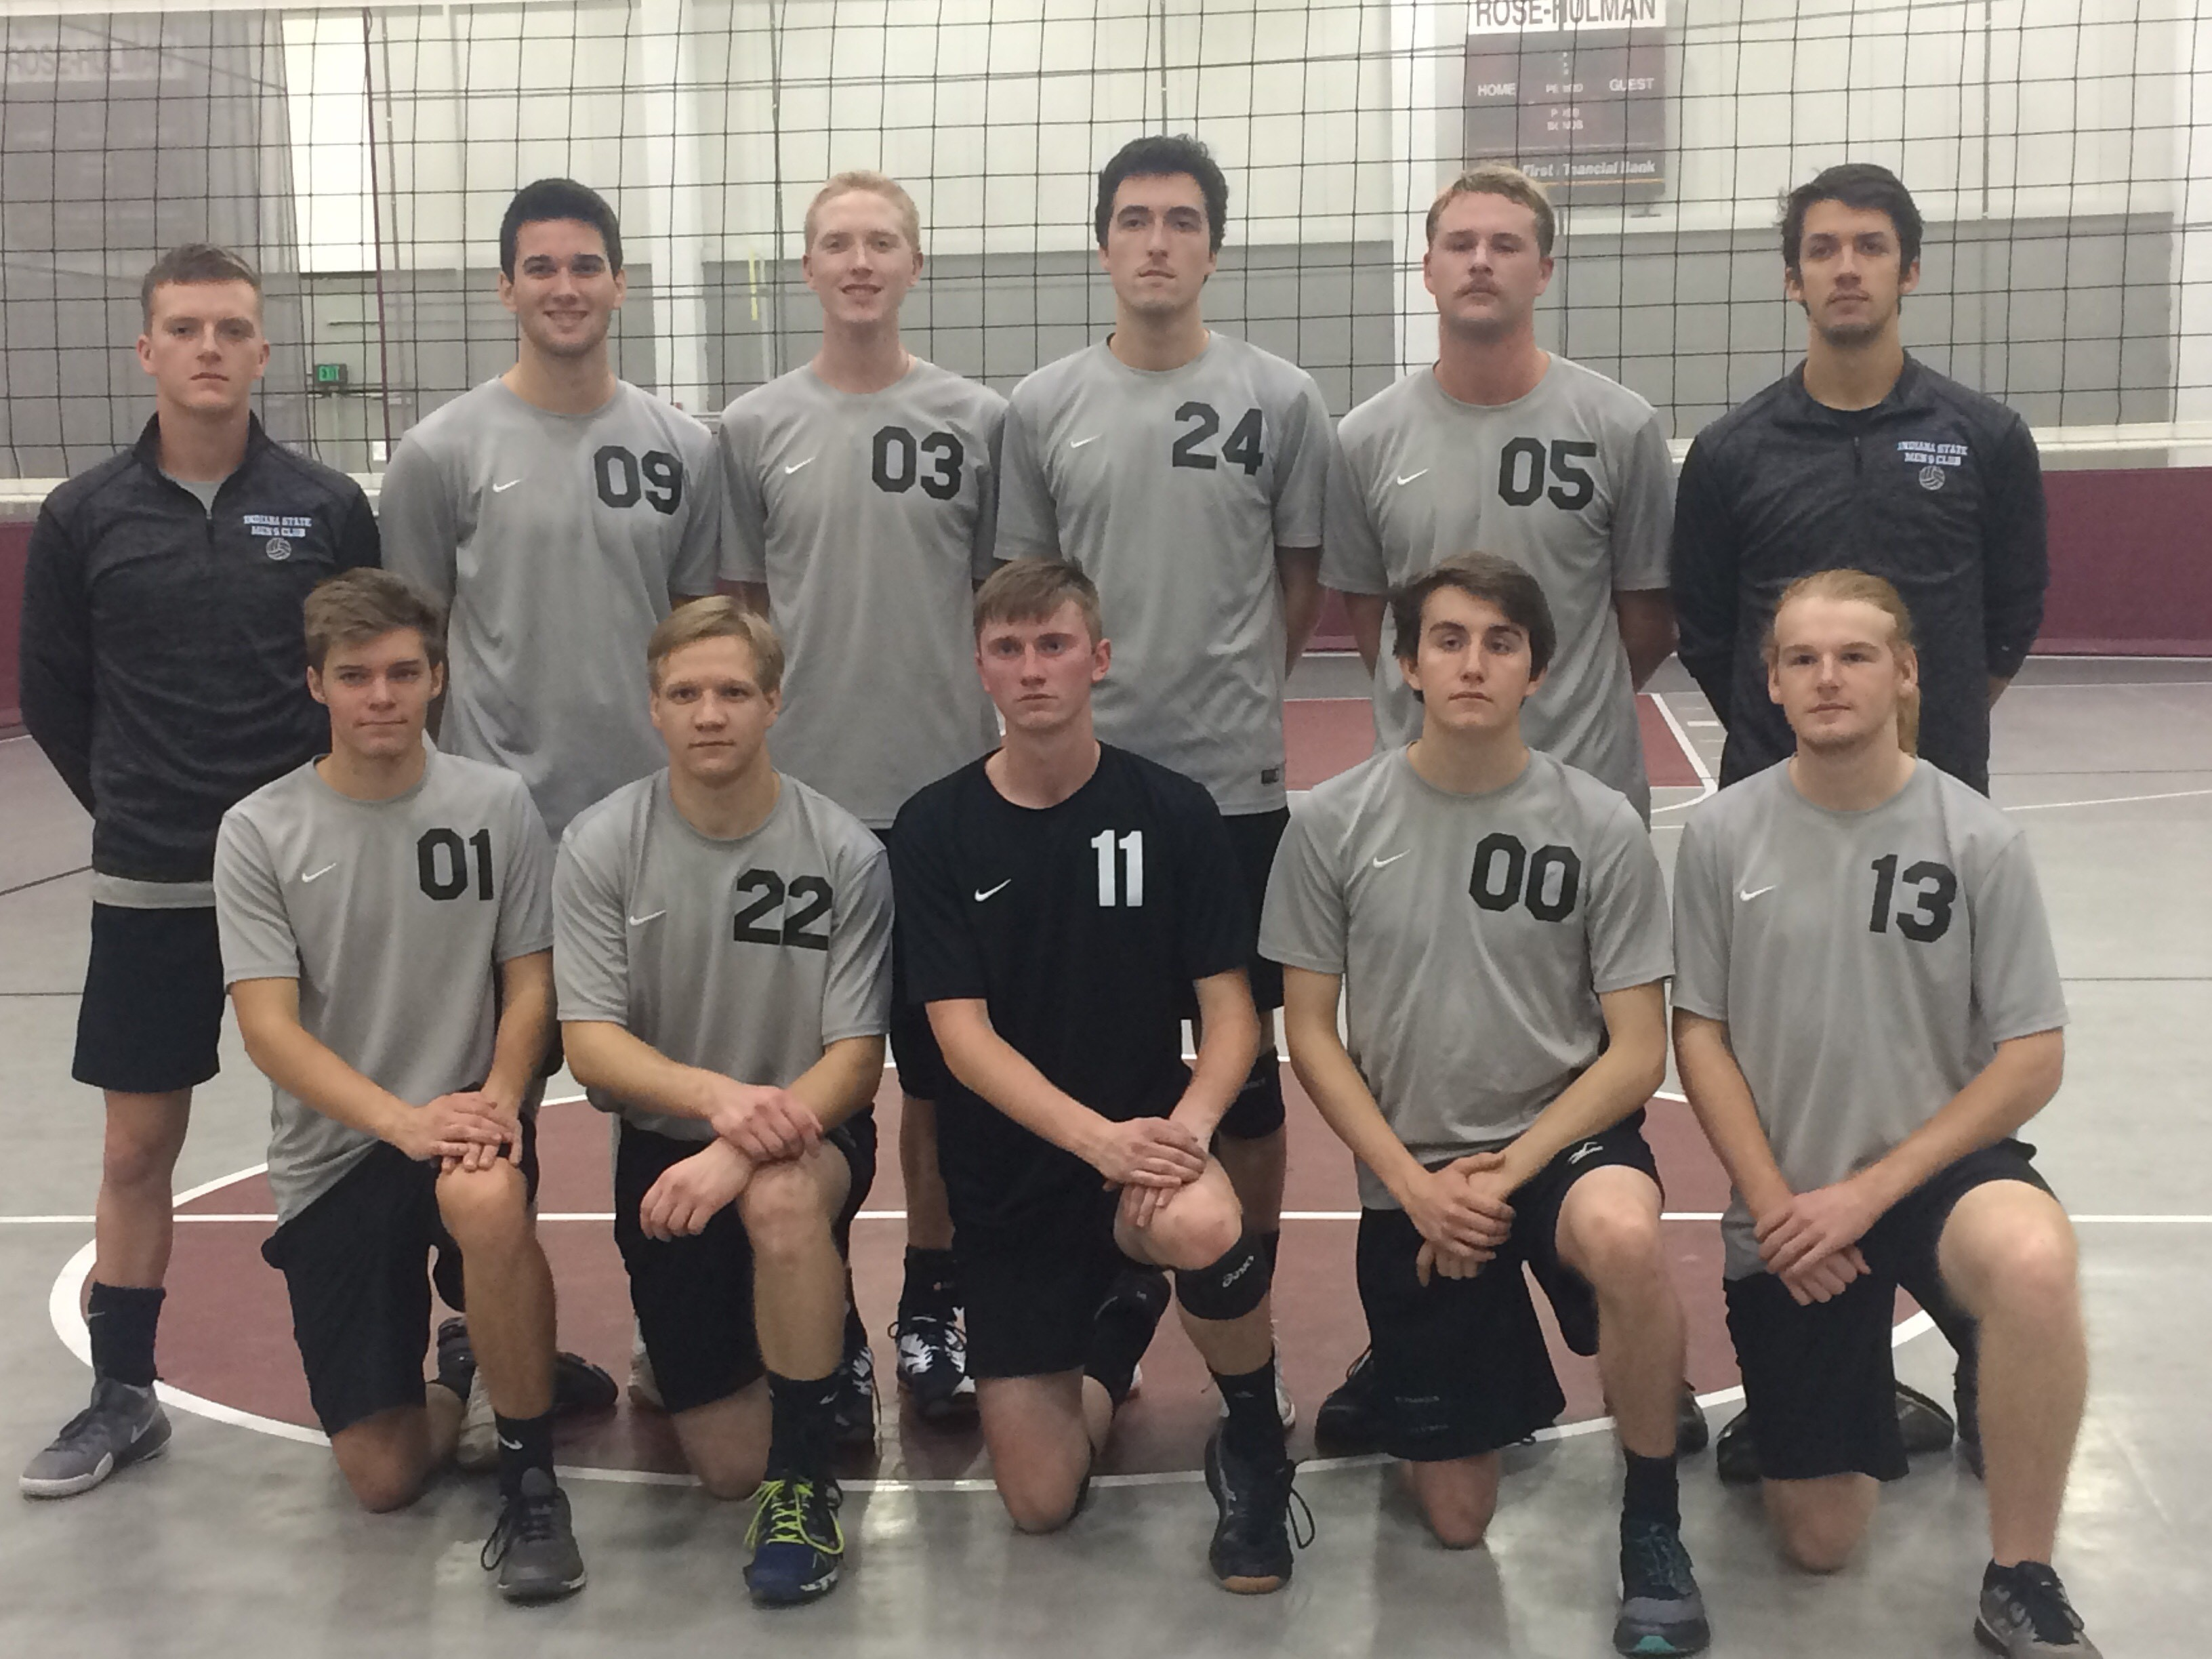 ISU Club Sports Men's Volleyball Team 2018